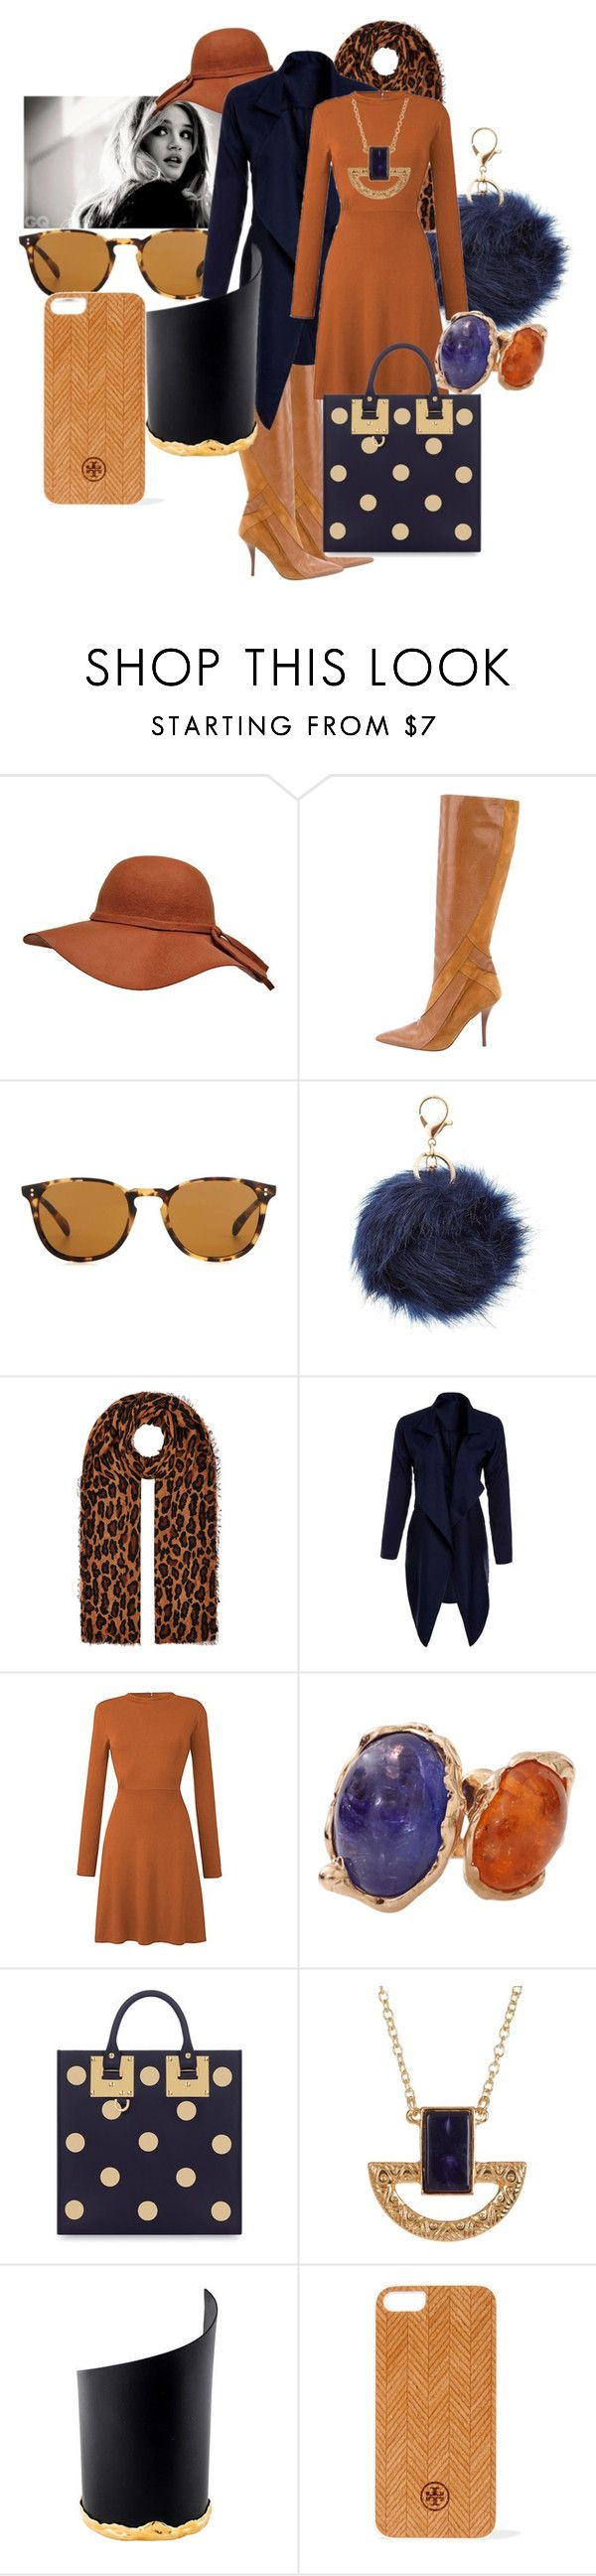 """Blue rising"" by thomdl95 on Polyvore featuring Alberta Ferretti, Oliver Peoples, Charlotte Russe, Accessorize, Lucifer Vir Honestus, Sophie Hulme, Jules Smith, Alexis Bittar and Tory Burch"